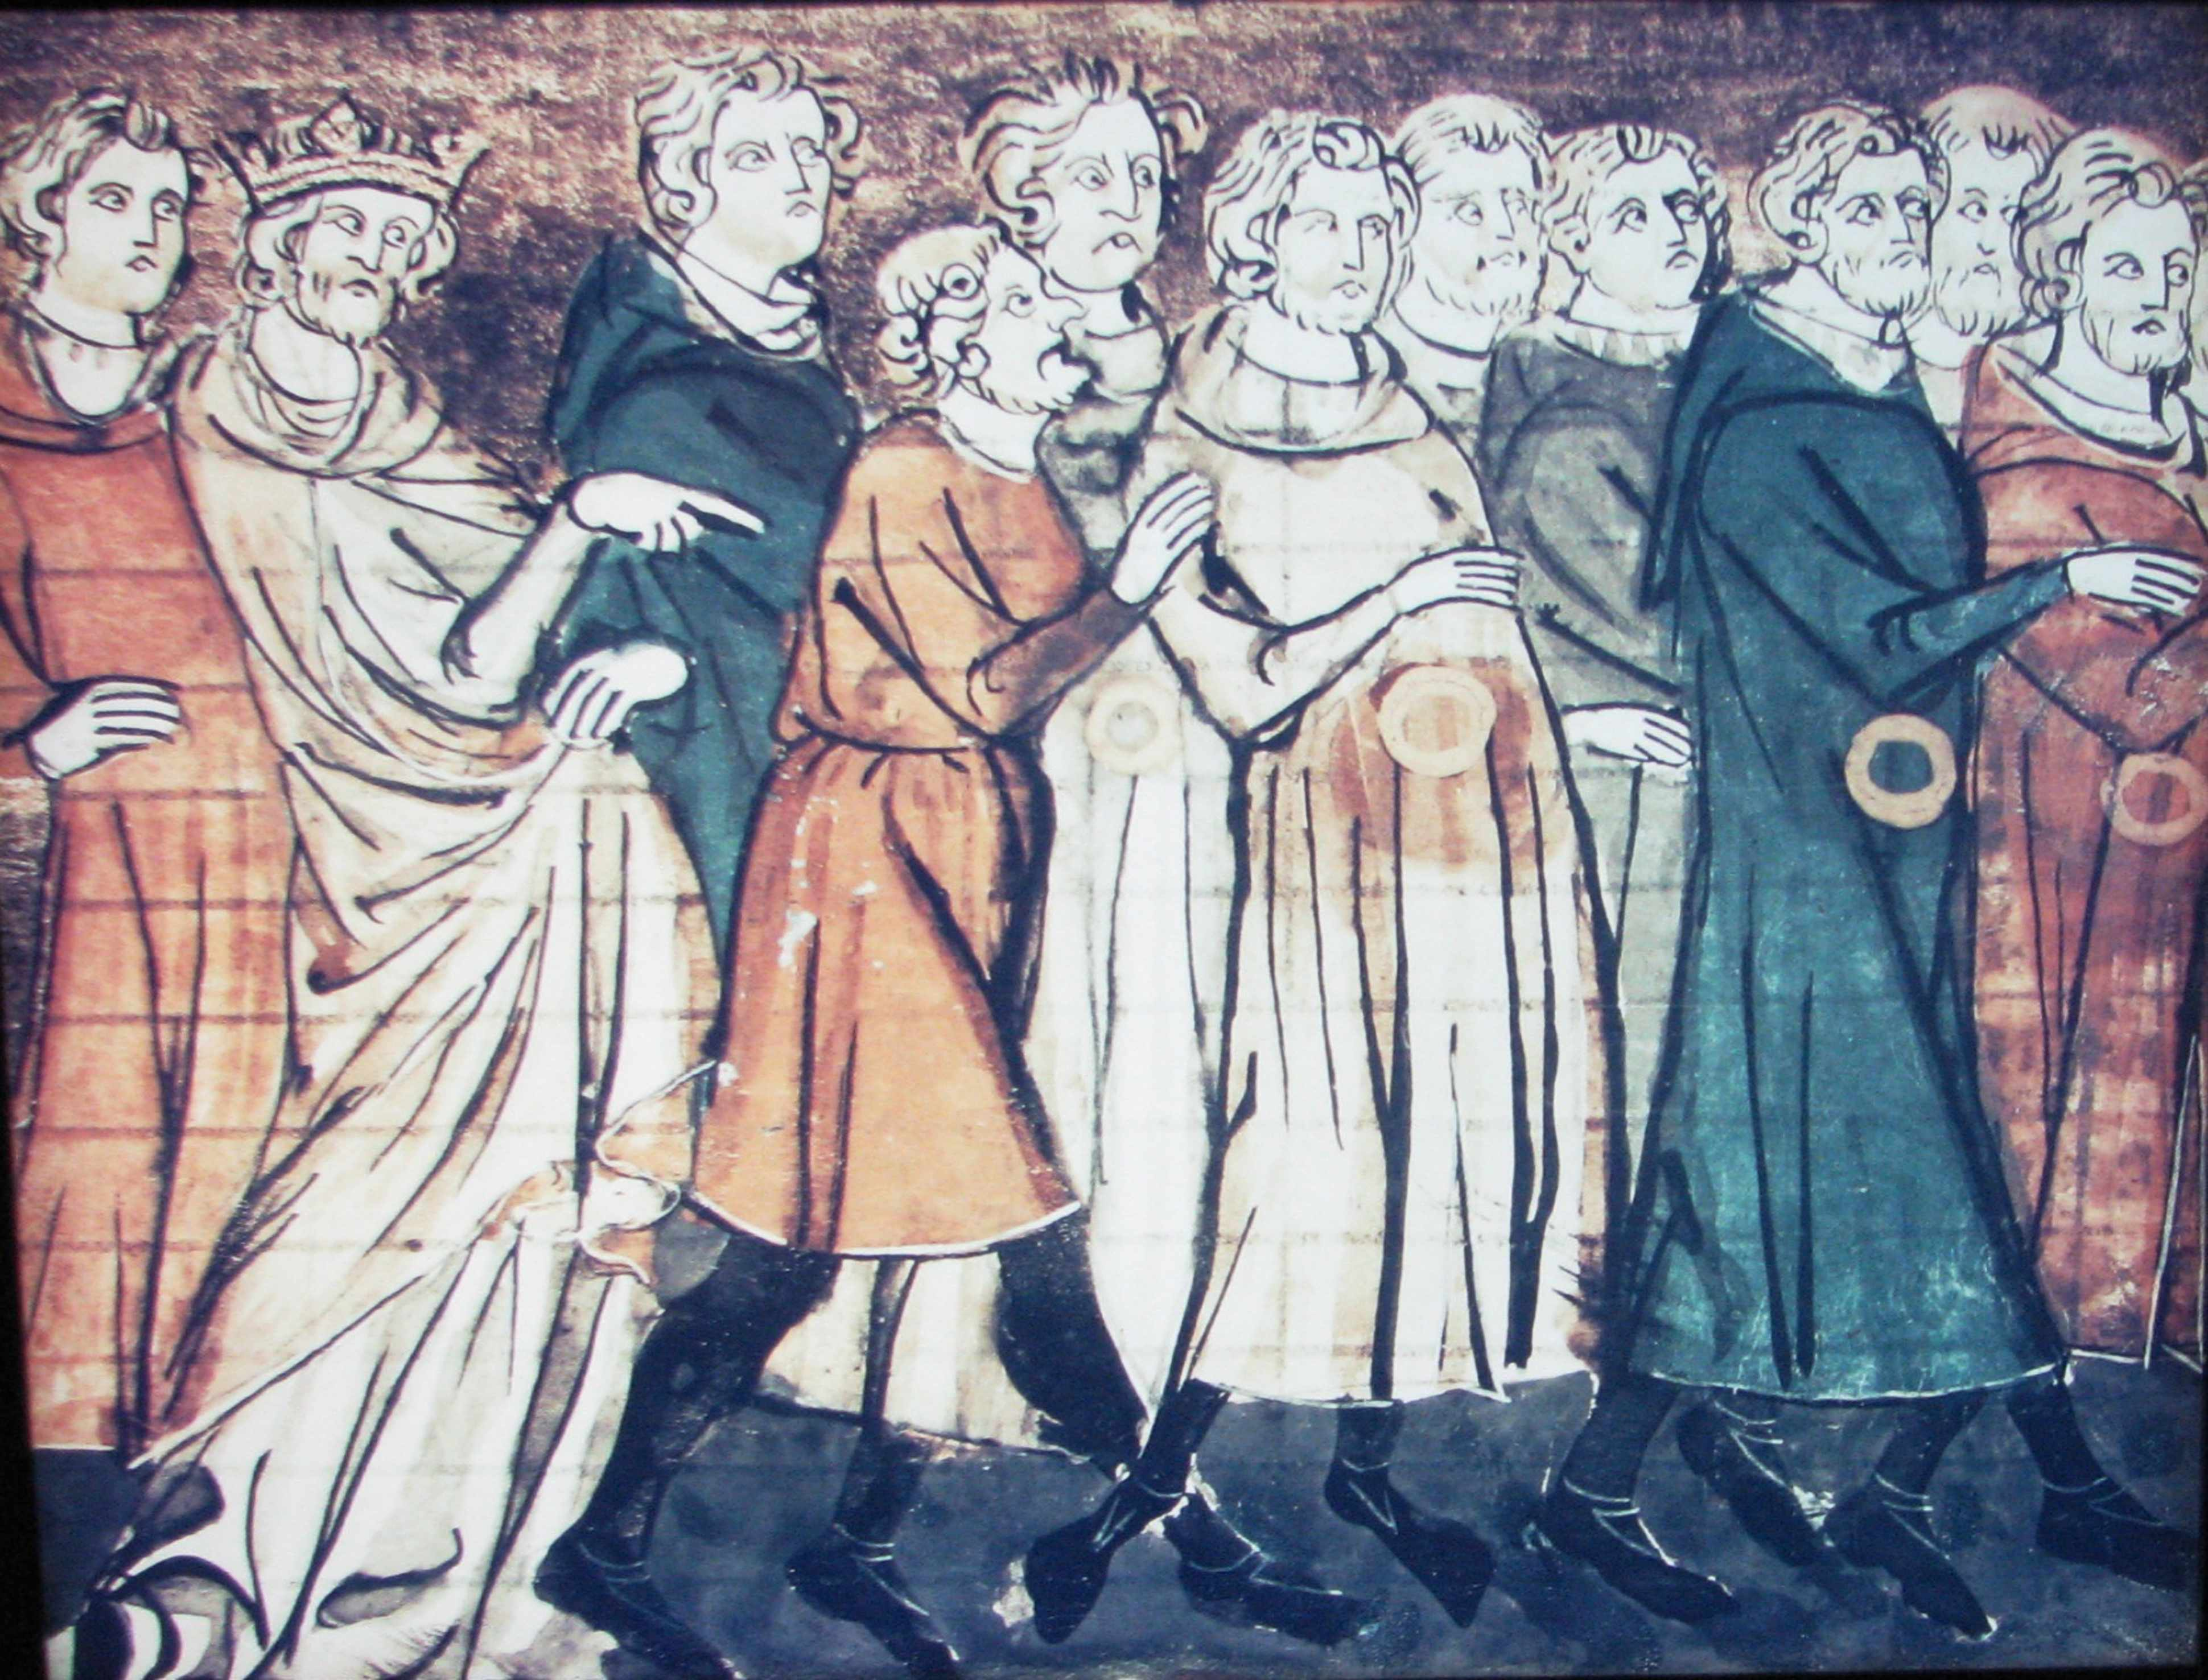 The expulsion of Jews from France in 1182. Found in the collection of the Bibliothèque Nationale de France. (Photo by Fine Art Images/Heritage Images/Getty Images)